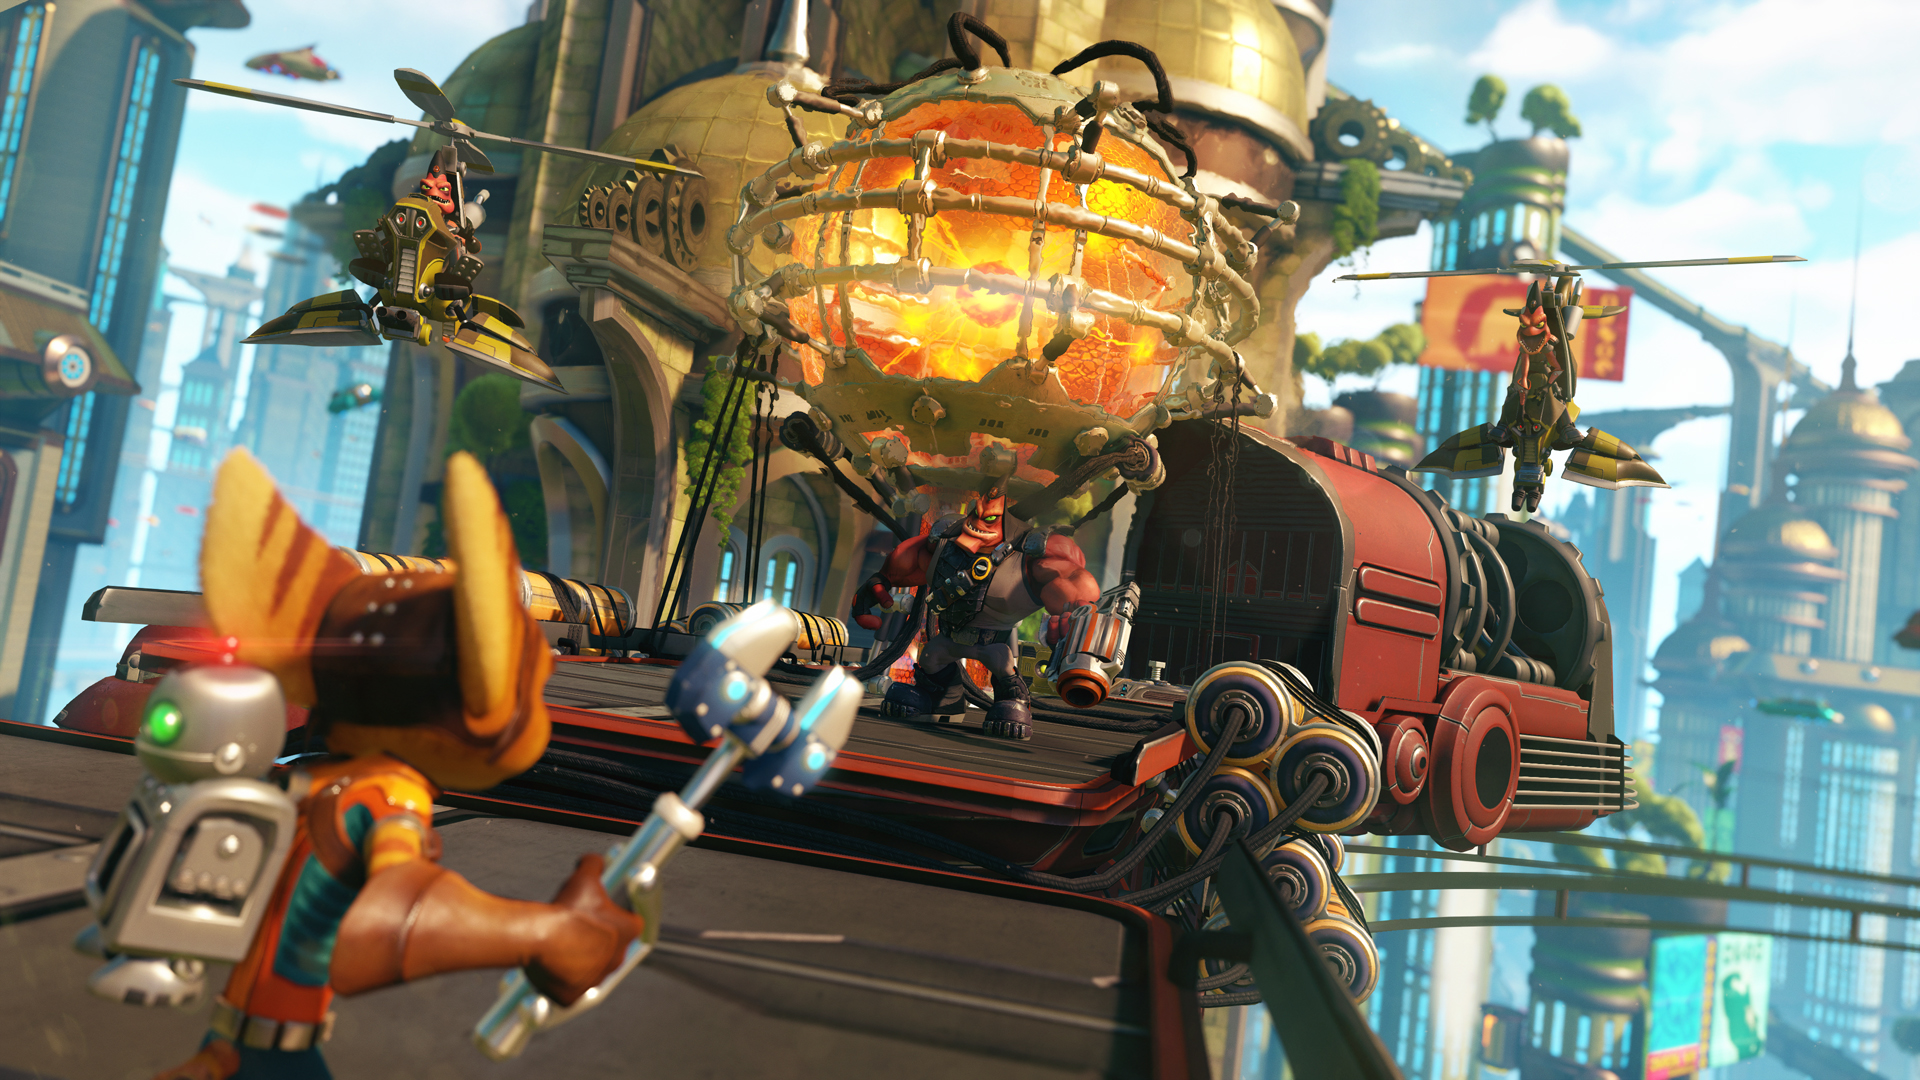 ratchet and clank 2016 screen 1 Playstation Christmas Gift Guide 2016